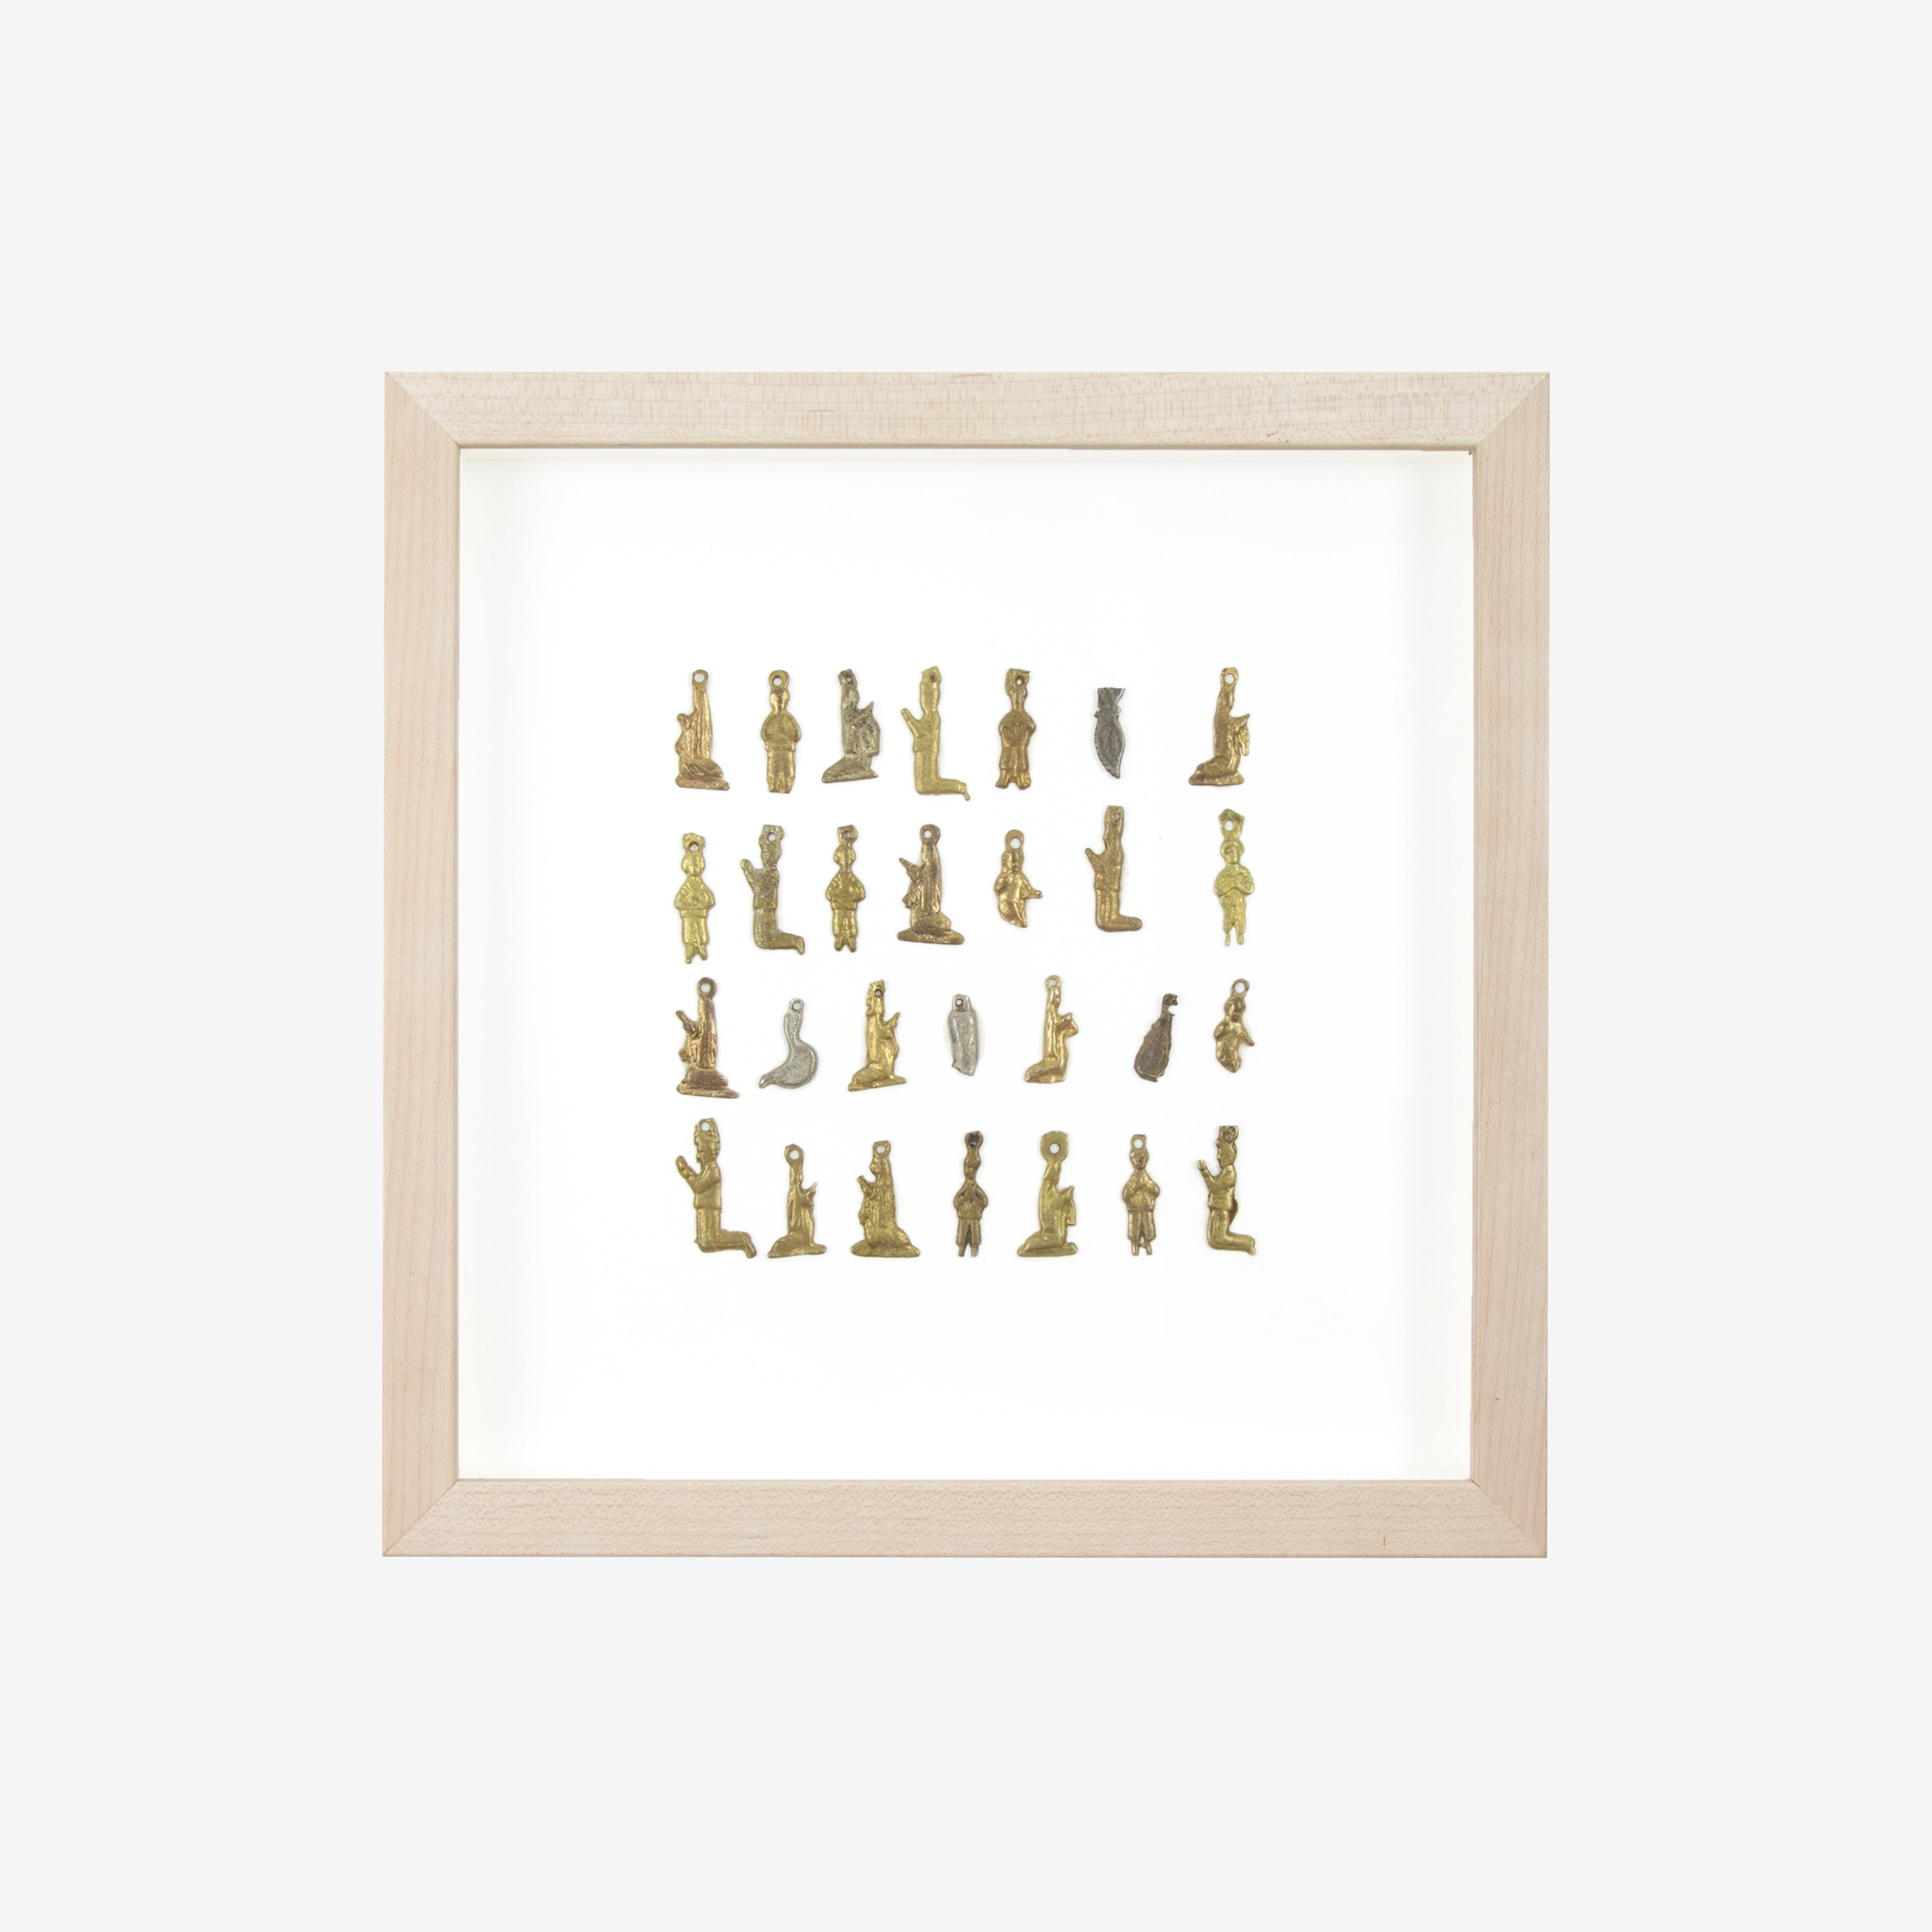 XSmall Figures Framed Ex Voto Art